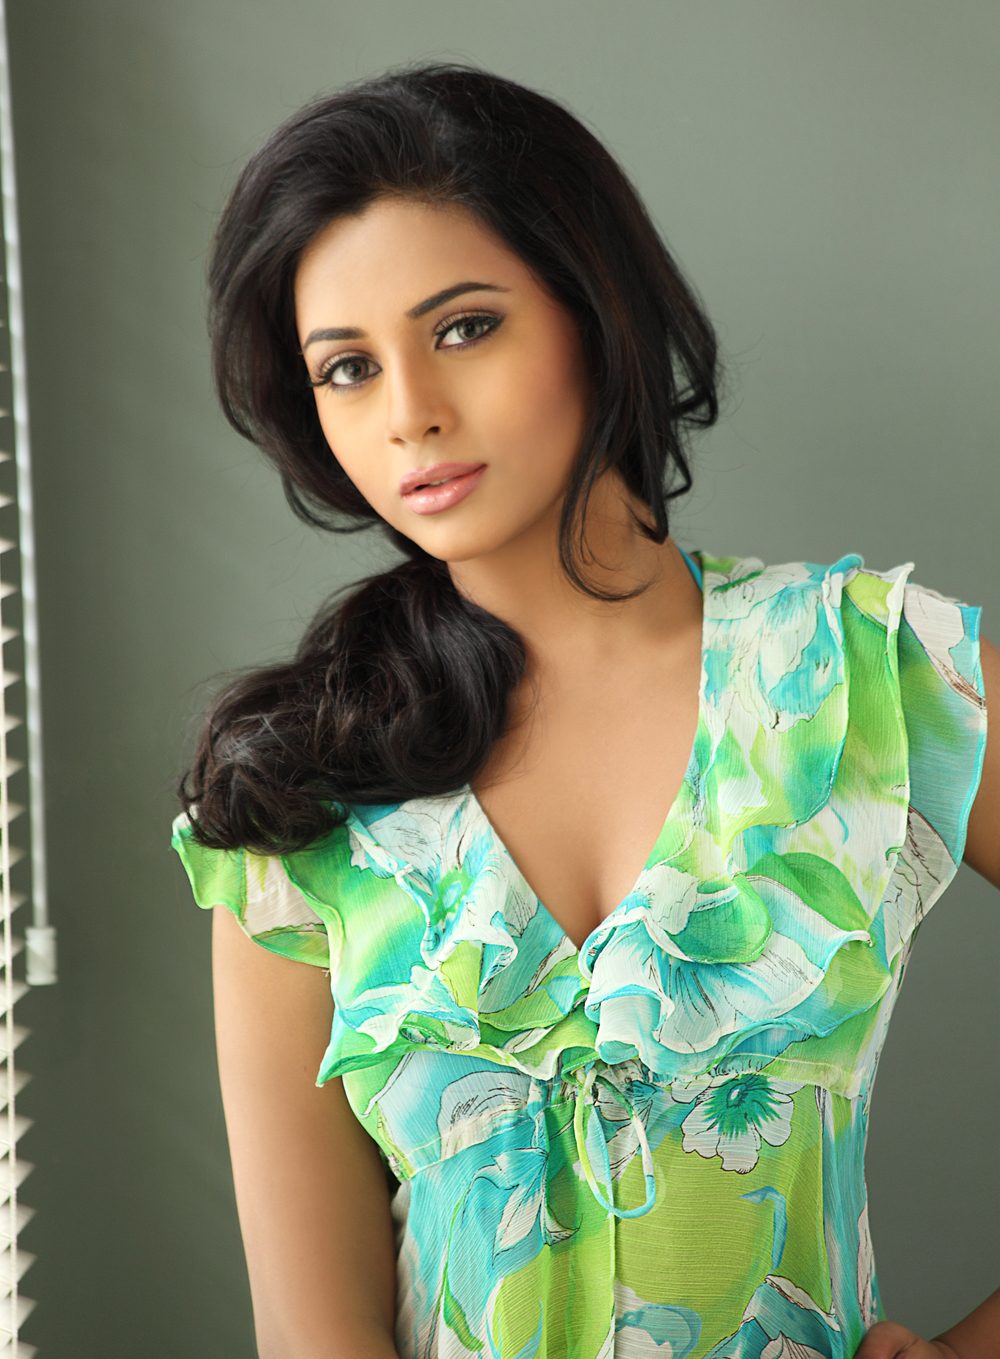 SouthGilma.com - Hot Pics | Hot Celebrity Photos | Hot Actress Images | Heroines hot Stills